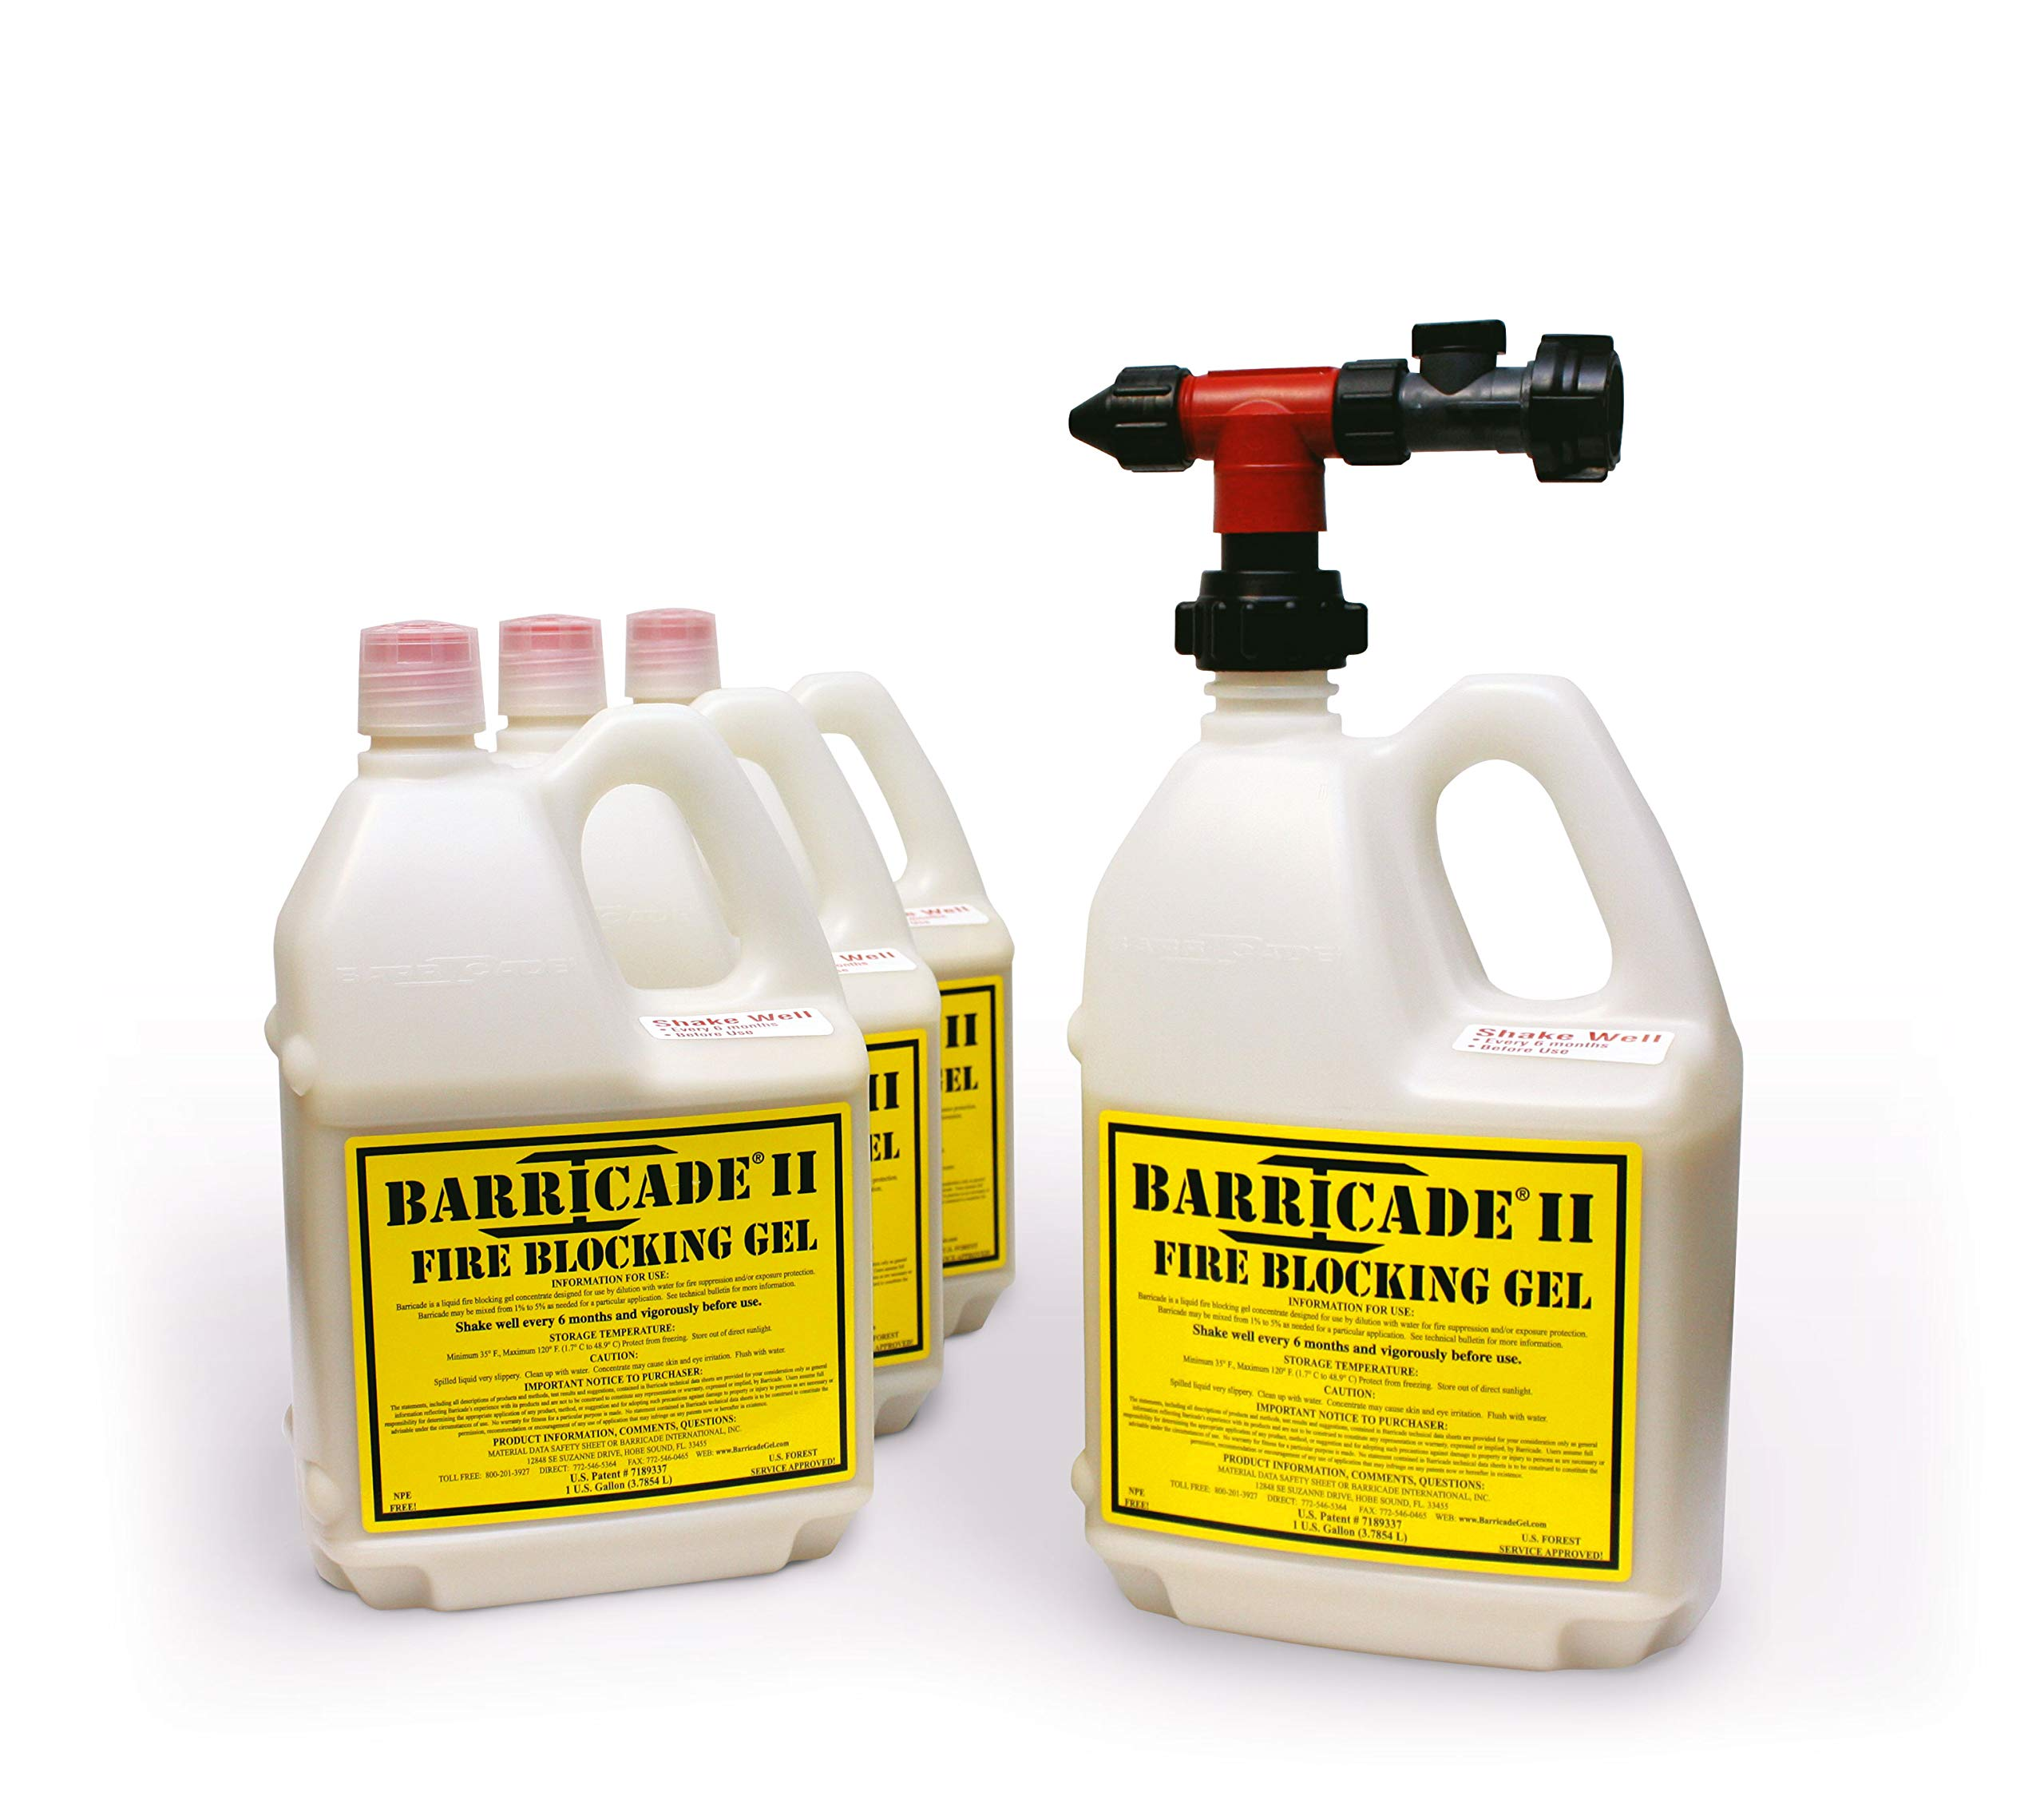 Barricade Fire Gel - Thermal-Protective Coating Provides Dead-Stop Fire Protection on Everything It Coats (Full Kit) by Barricade